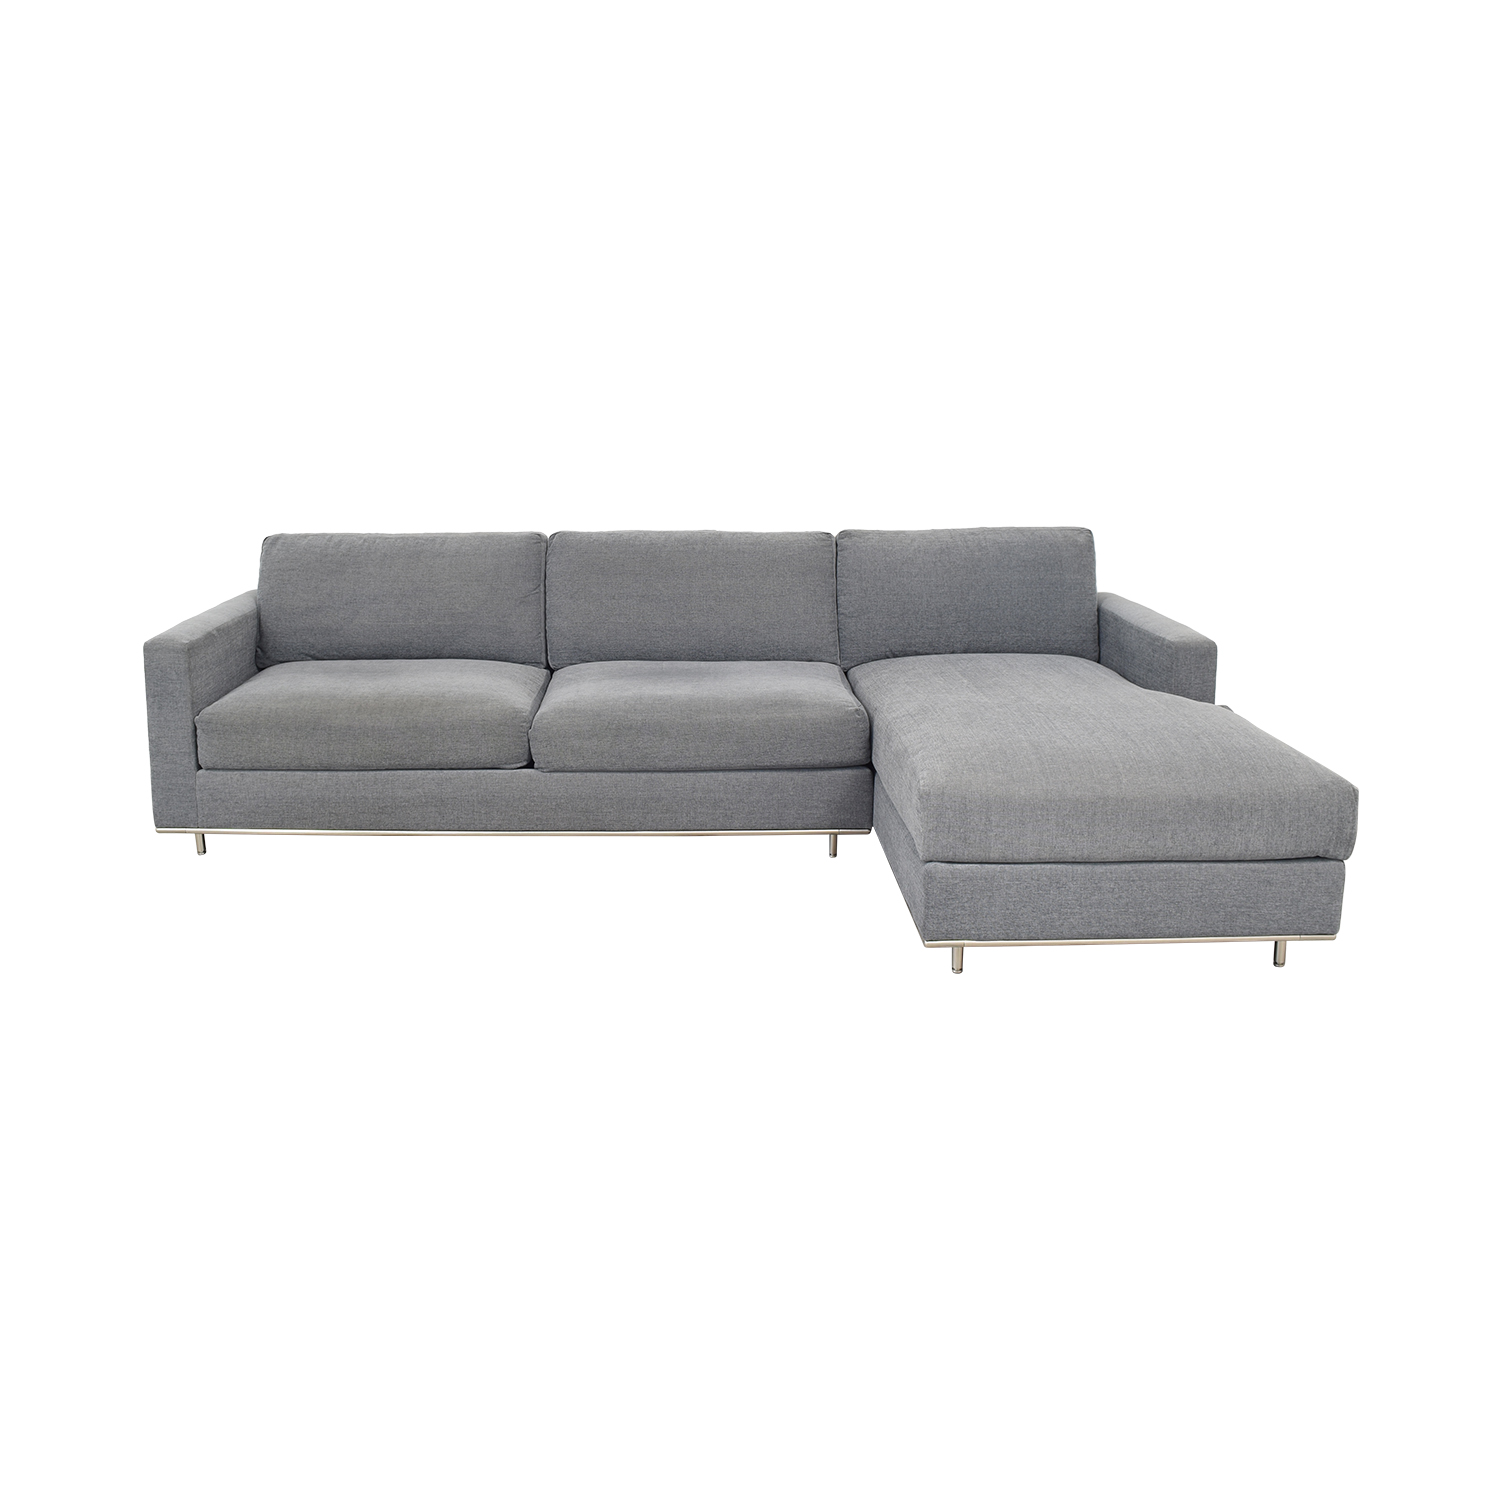 Weiman Sectional Sofa with Chaise Weiman